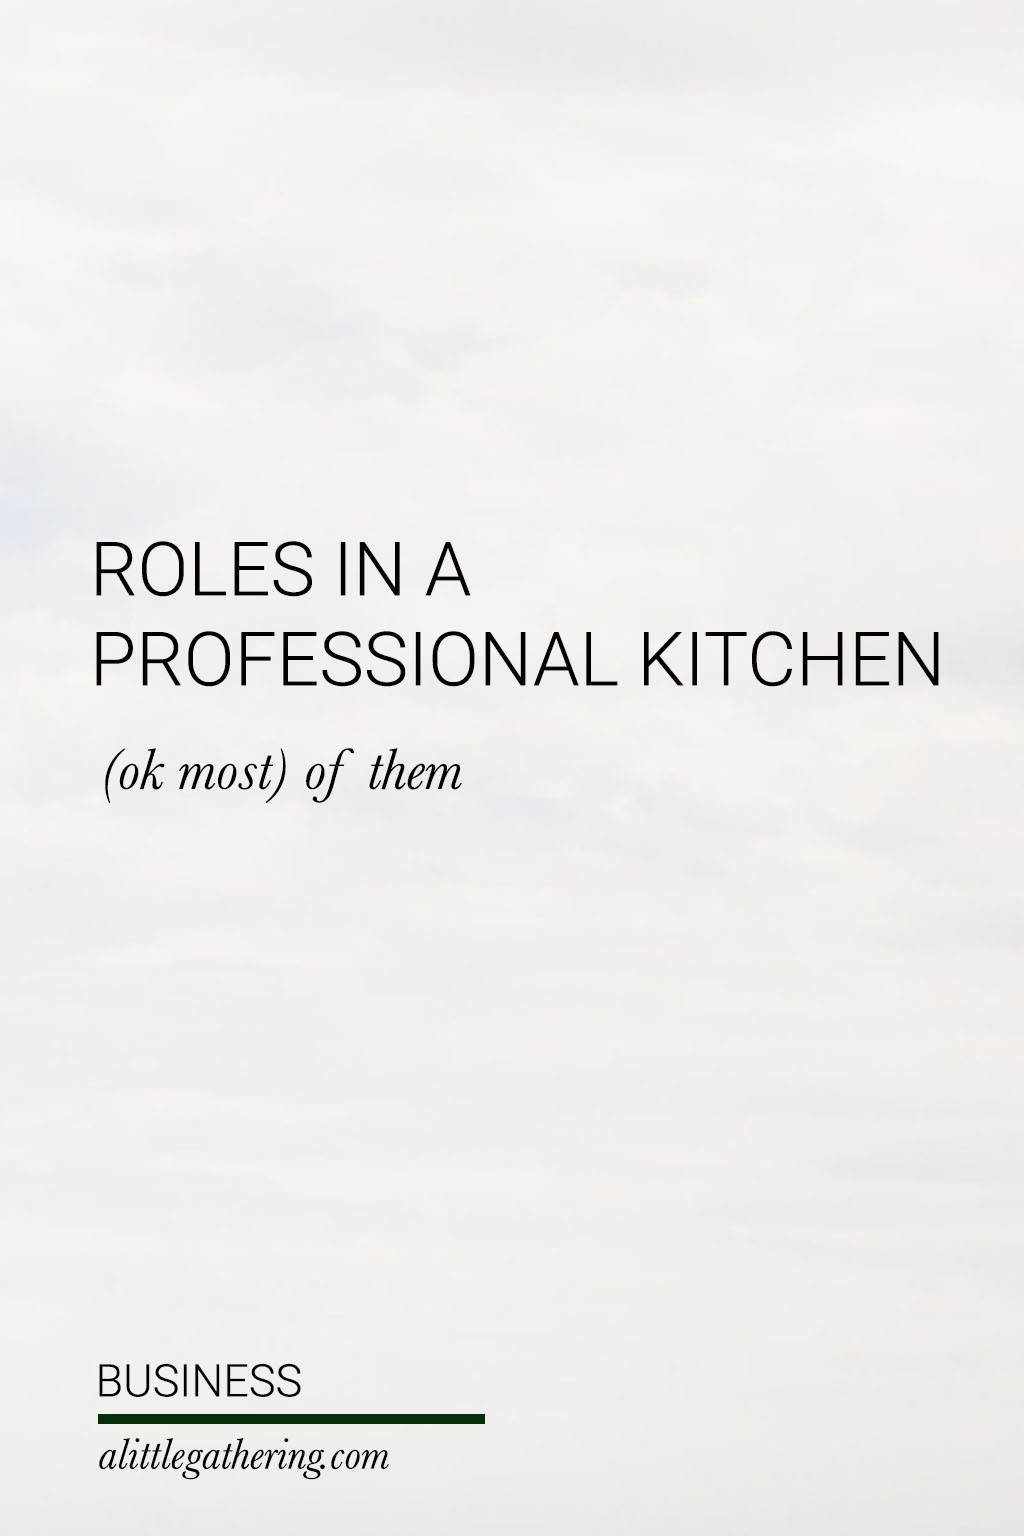 roles-in-a-professional-kitchen